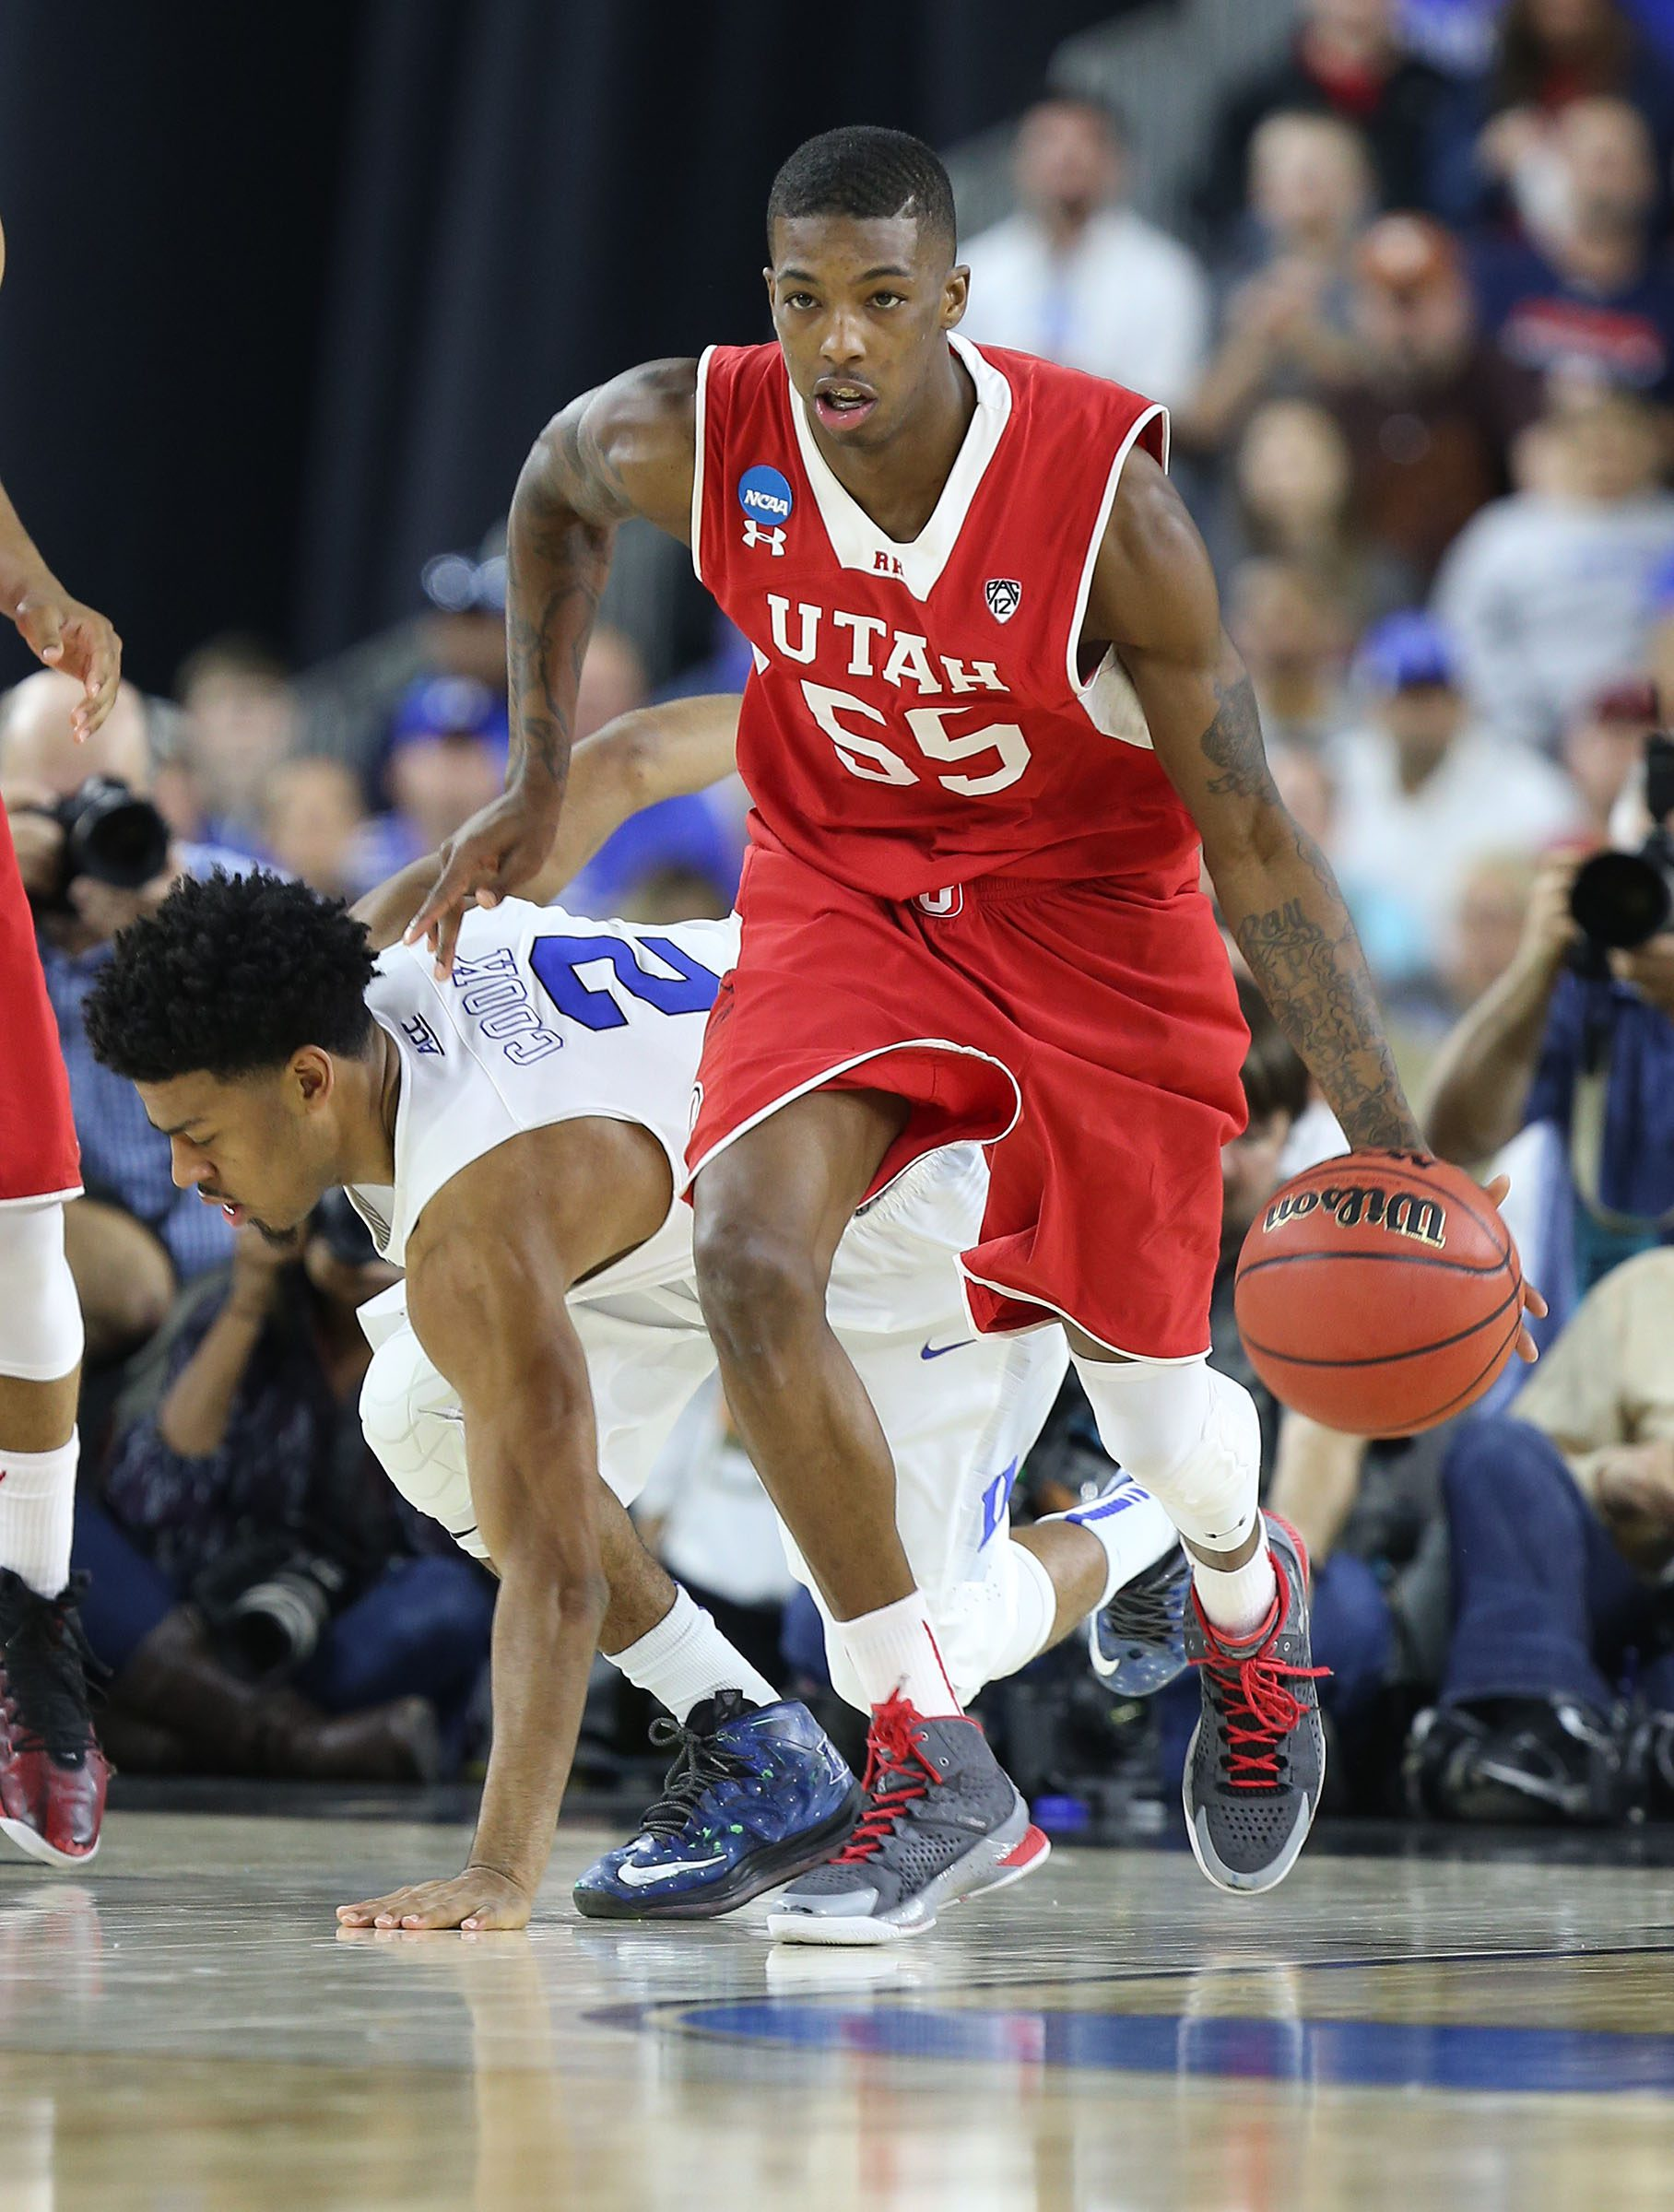 Utah Utes guard Delon Wright (55) as the University of Utah is defeated by Duke 63-57 in the Sweet Sixteen round of the NCAA Men's Basketball Tournament Friday, March 27, 2015, in Houston.